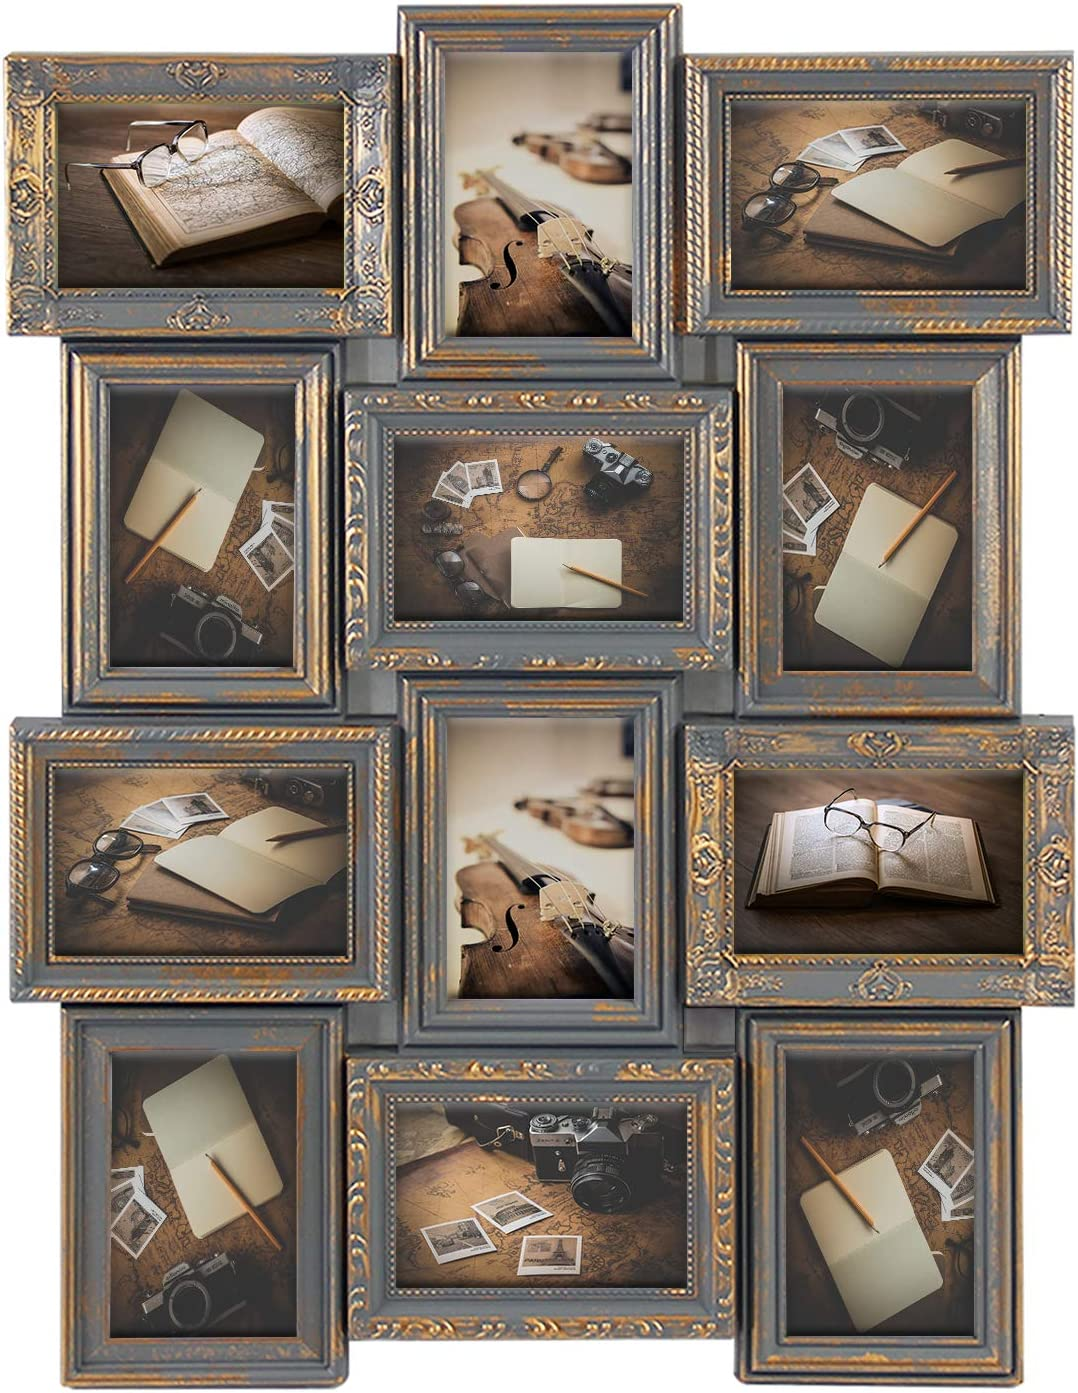 Jerry & Maggie - Photo Frame 23X18 Gray Gold Finish Curved PVC Picture Frame Selfie Gallery Collage Wall Hanging For 6x4 Photo - 12 Photo Sockets - Classic Loyalty Style - Wall Mounting Design